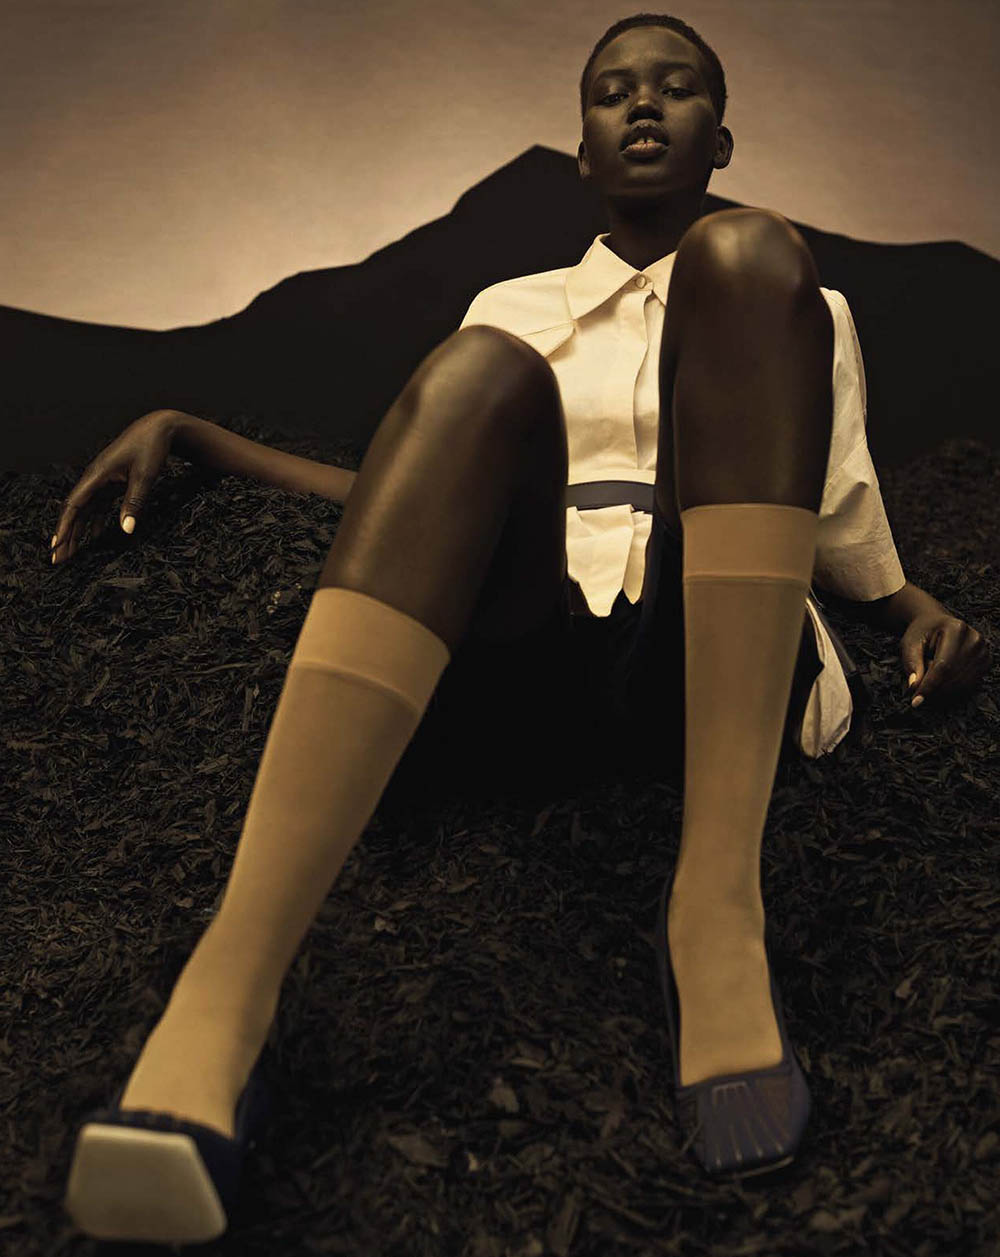 Adut-Akech-by-Josh-Olins-for-Vogue-Italia-April-2019-4.jpg